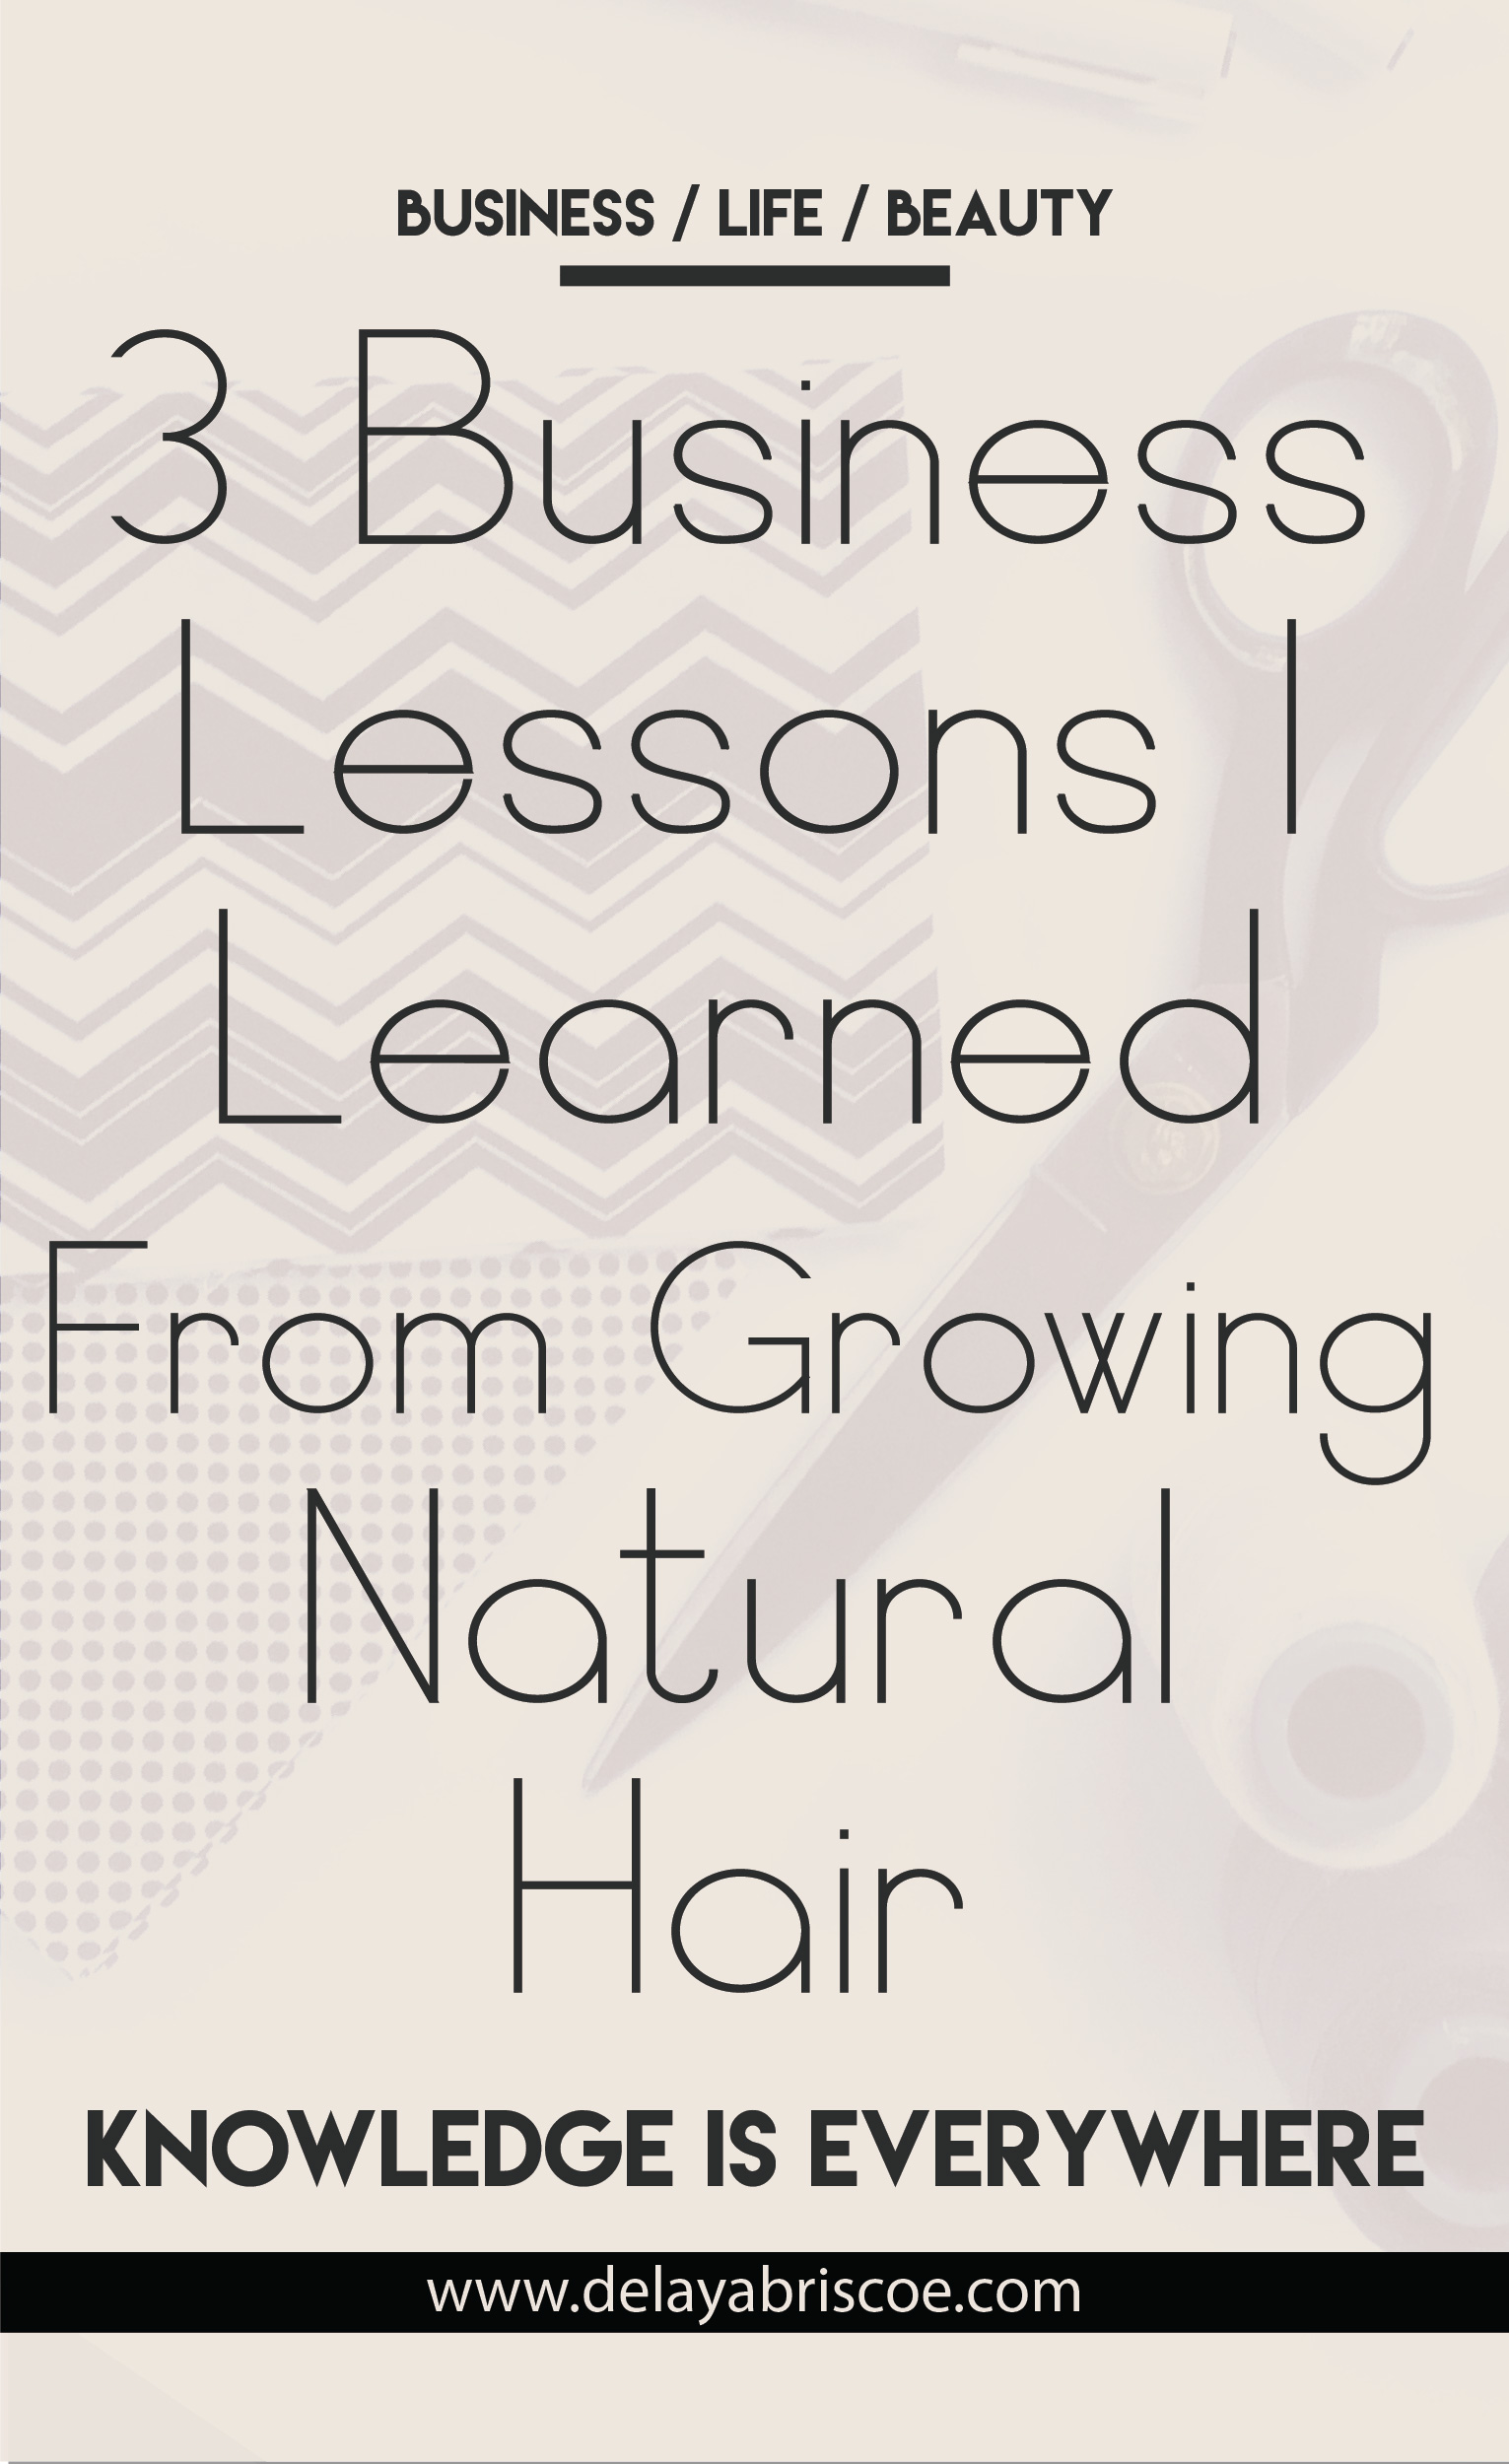 BUSINESS-LESSONS-LEARNED-GROWING-NATURAL-HAIR